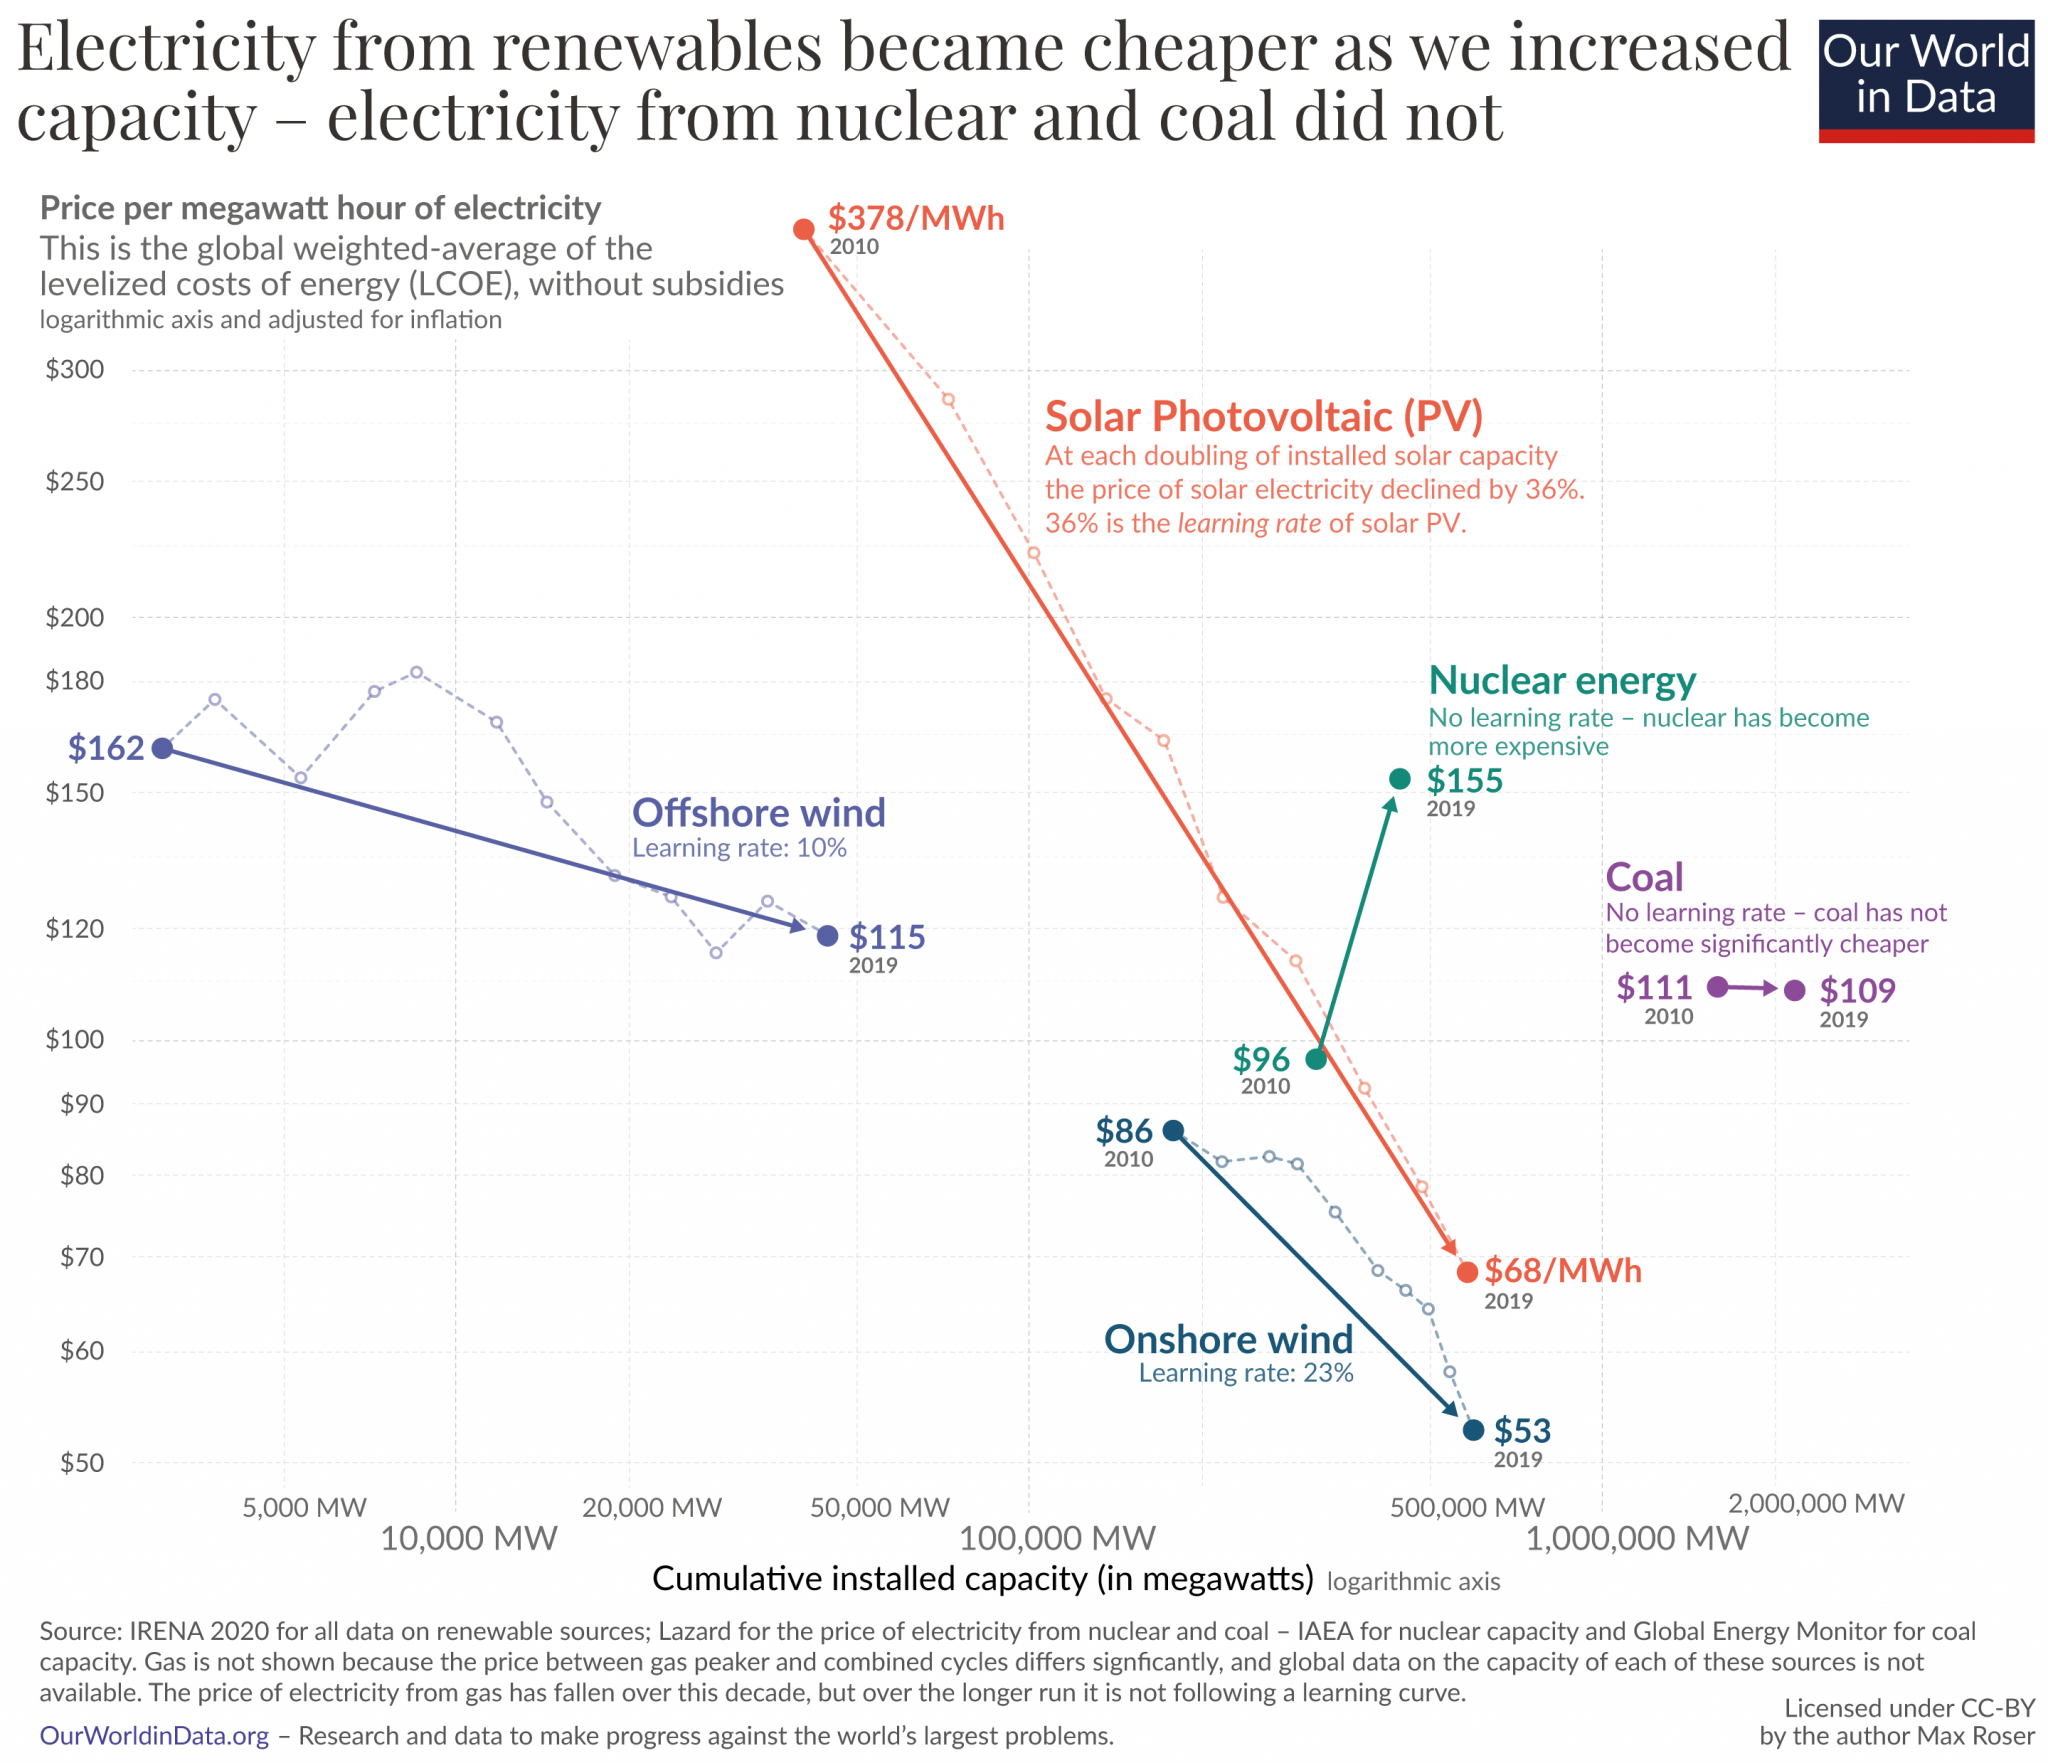 Prices of solar power have dropped over the past 10 years